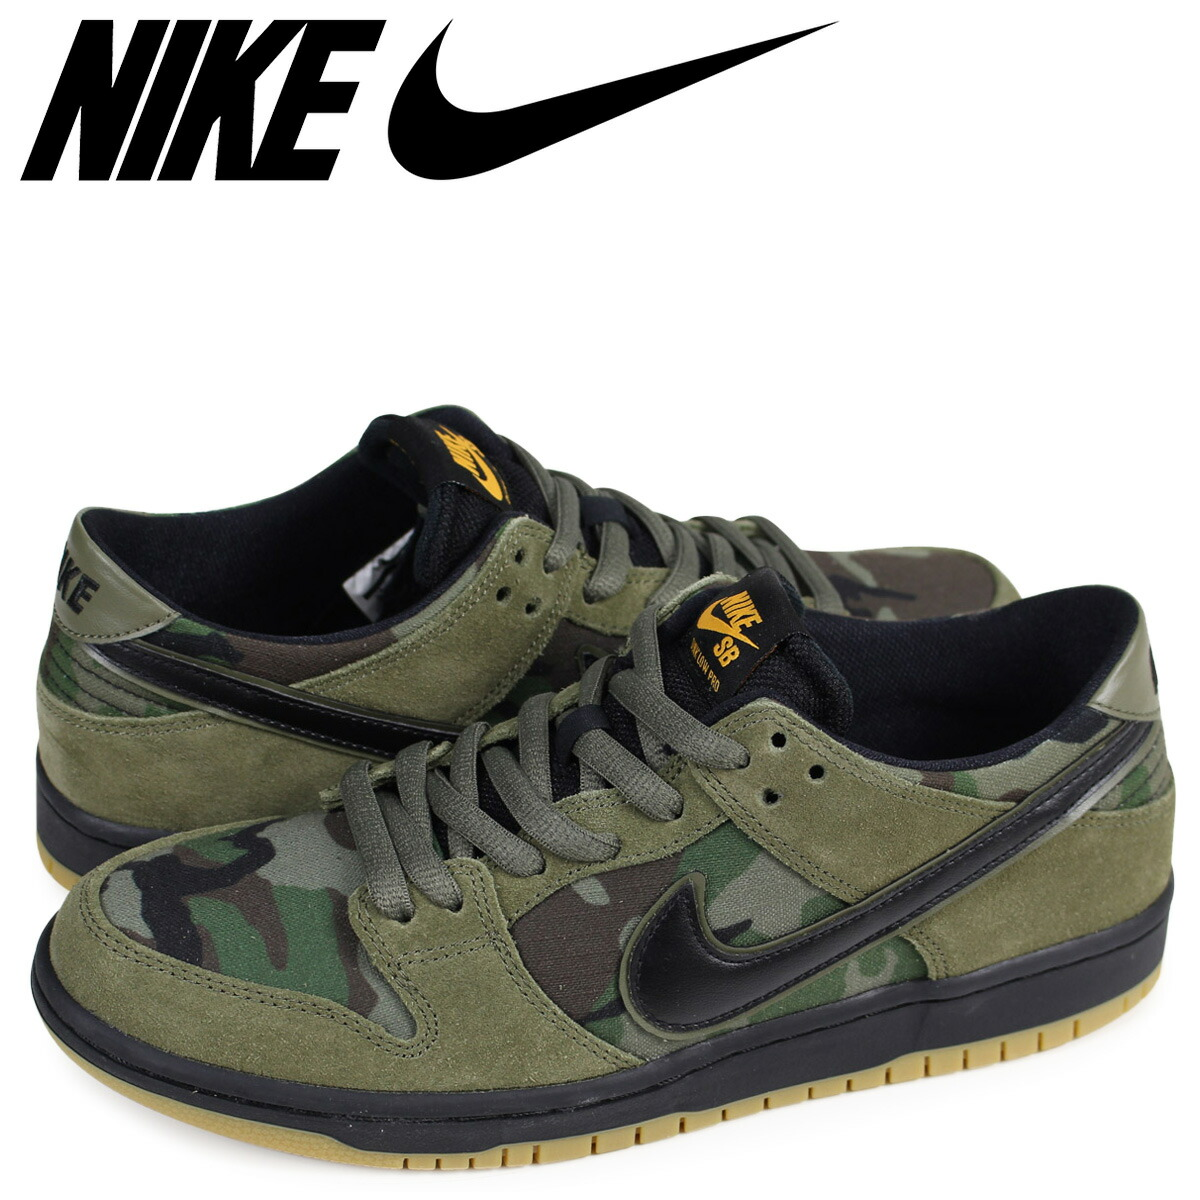 reputable site f54a7 cbeab NIKE ZOOM DUNK LOW PRO Nike SB dunk low sneakers men olive duck camouflage  854,866-209